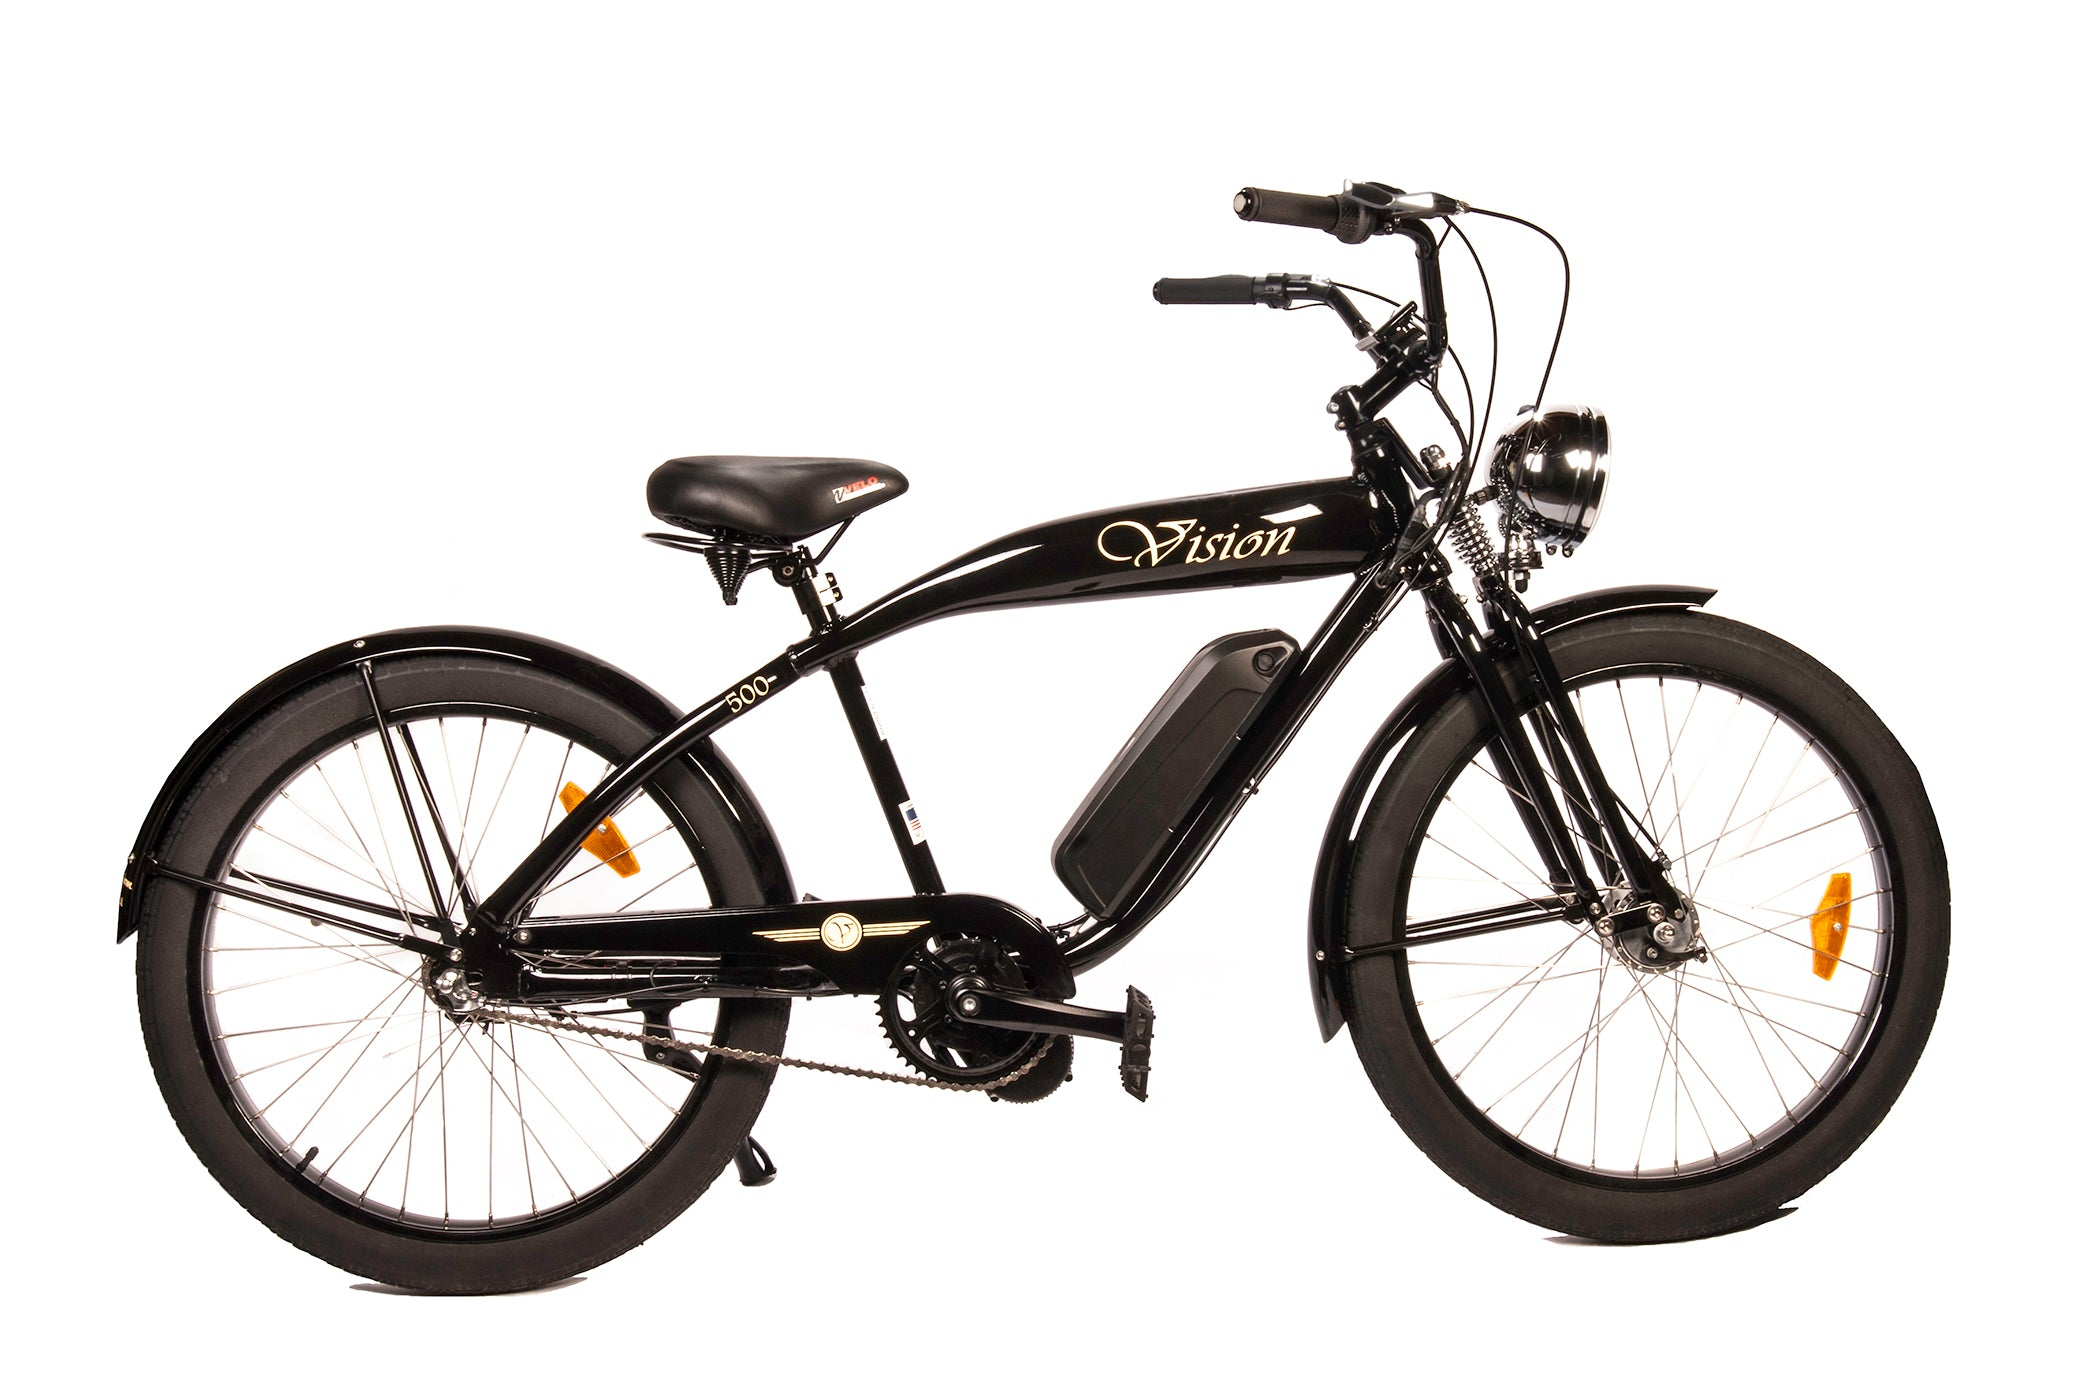 Phantom Vision Retro Electric Bicycle – ebicycleonline.com